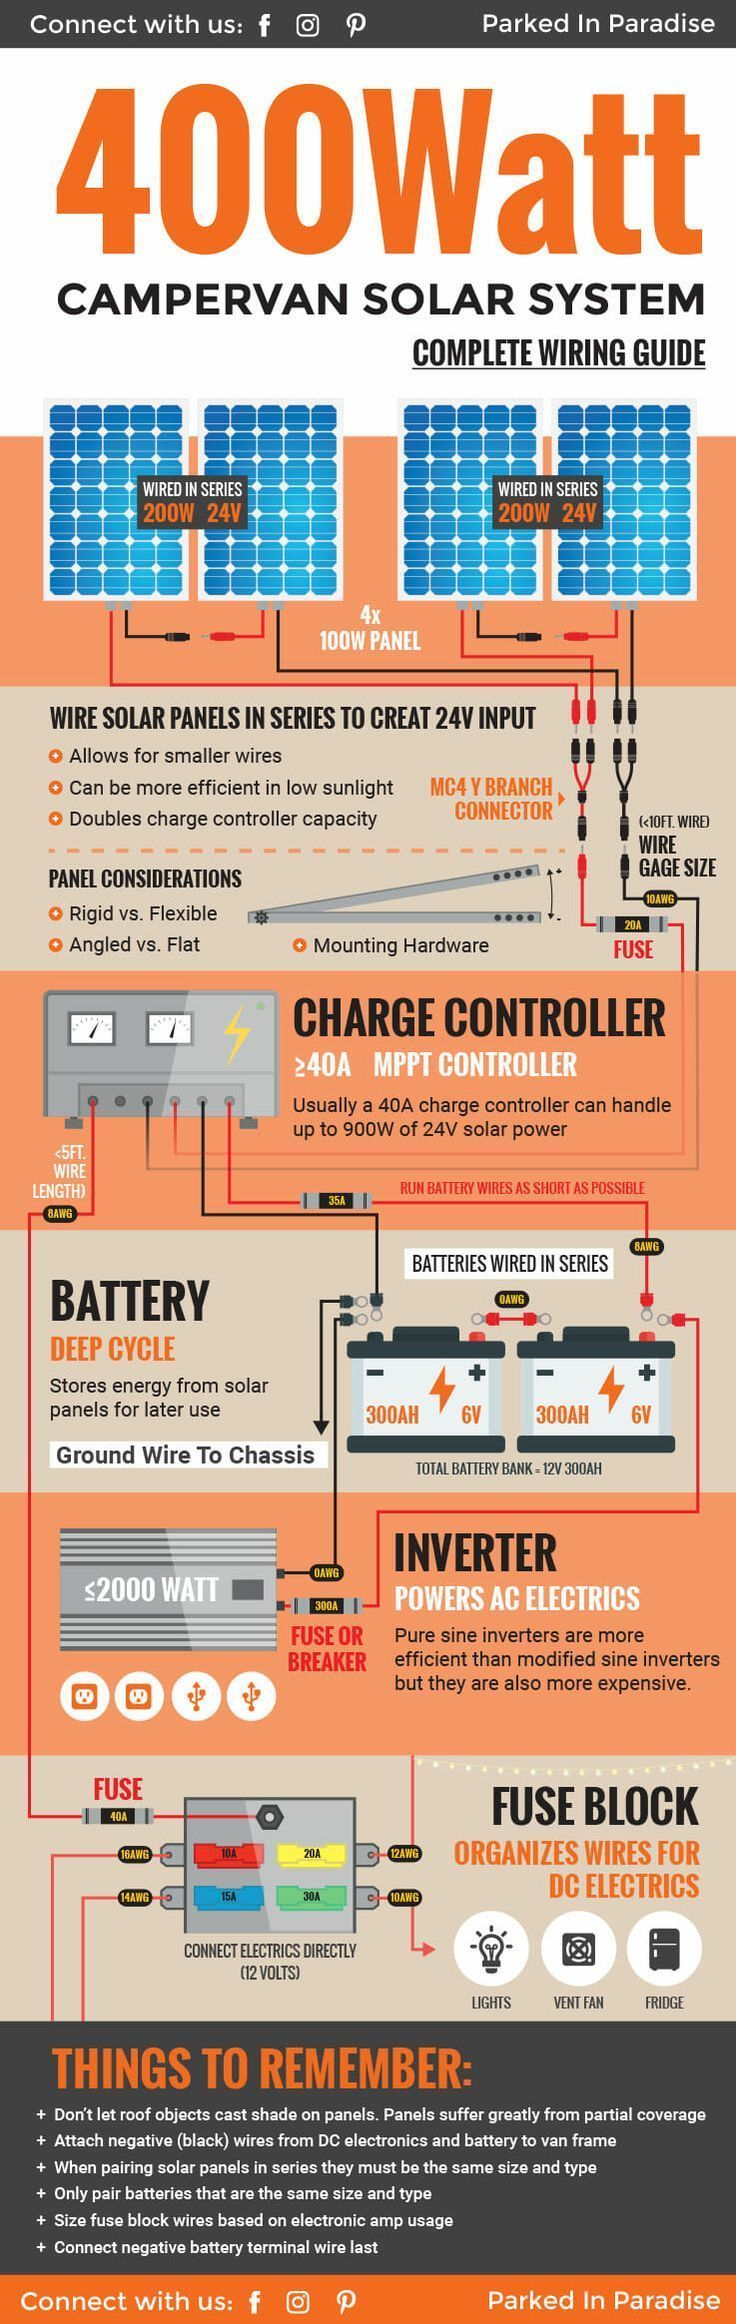 diy wiring guide for a 400 watt solar panel system perfect kit for a campervan build i want this on my own van build perfect solar power setup of  [ 736 x 2324 Pixel ]